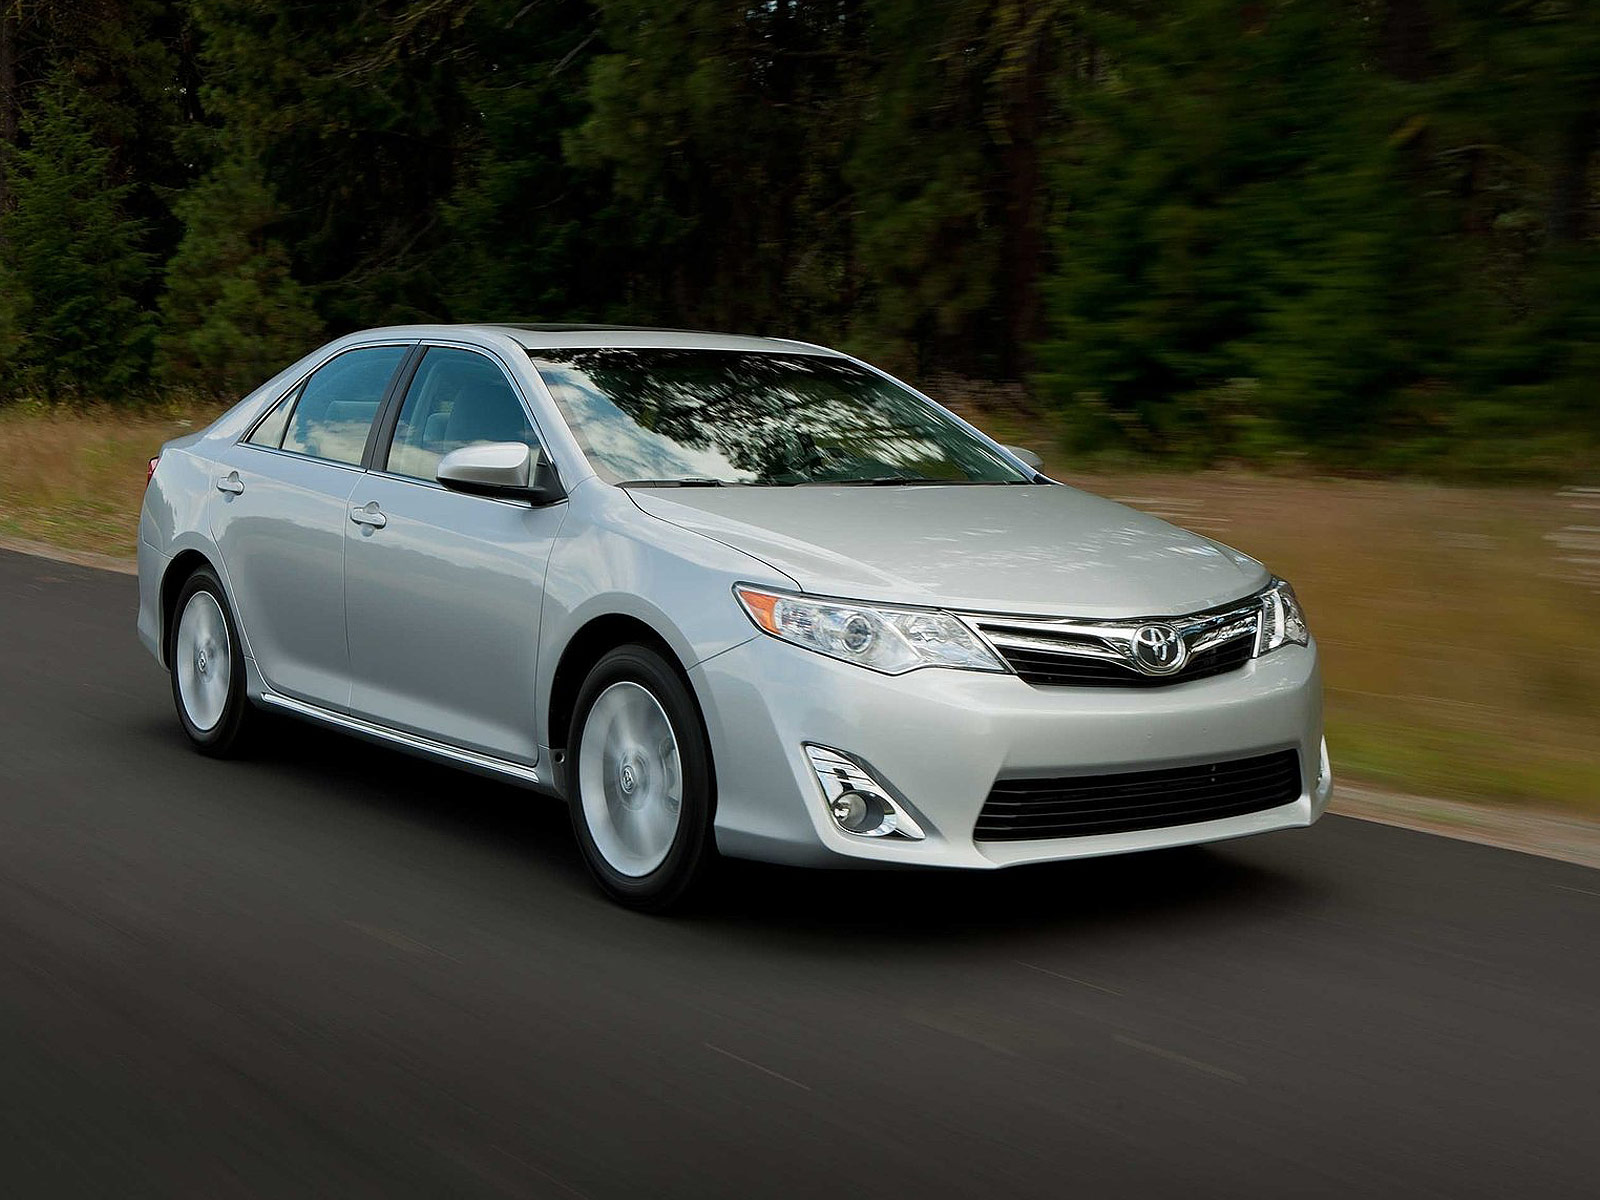 2012 toyota camry japanese car photos. Black Bedroom Furniture Sets. Home Design Ideas